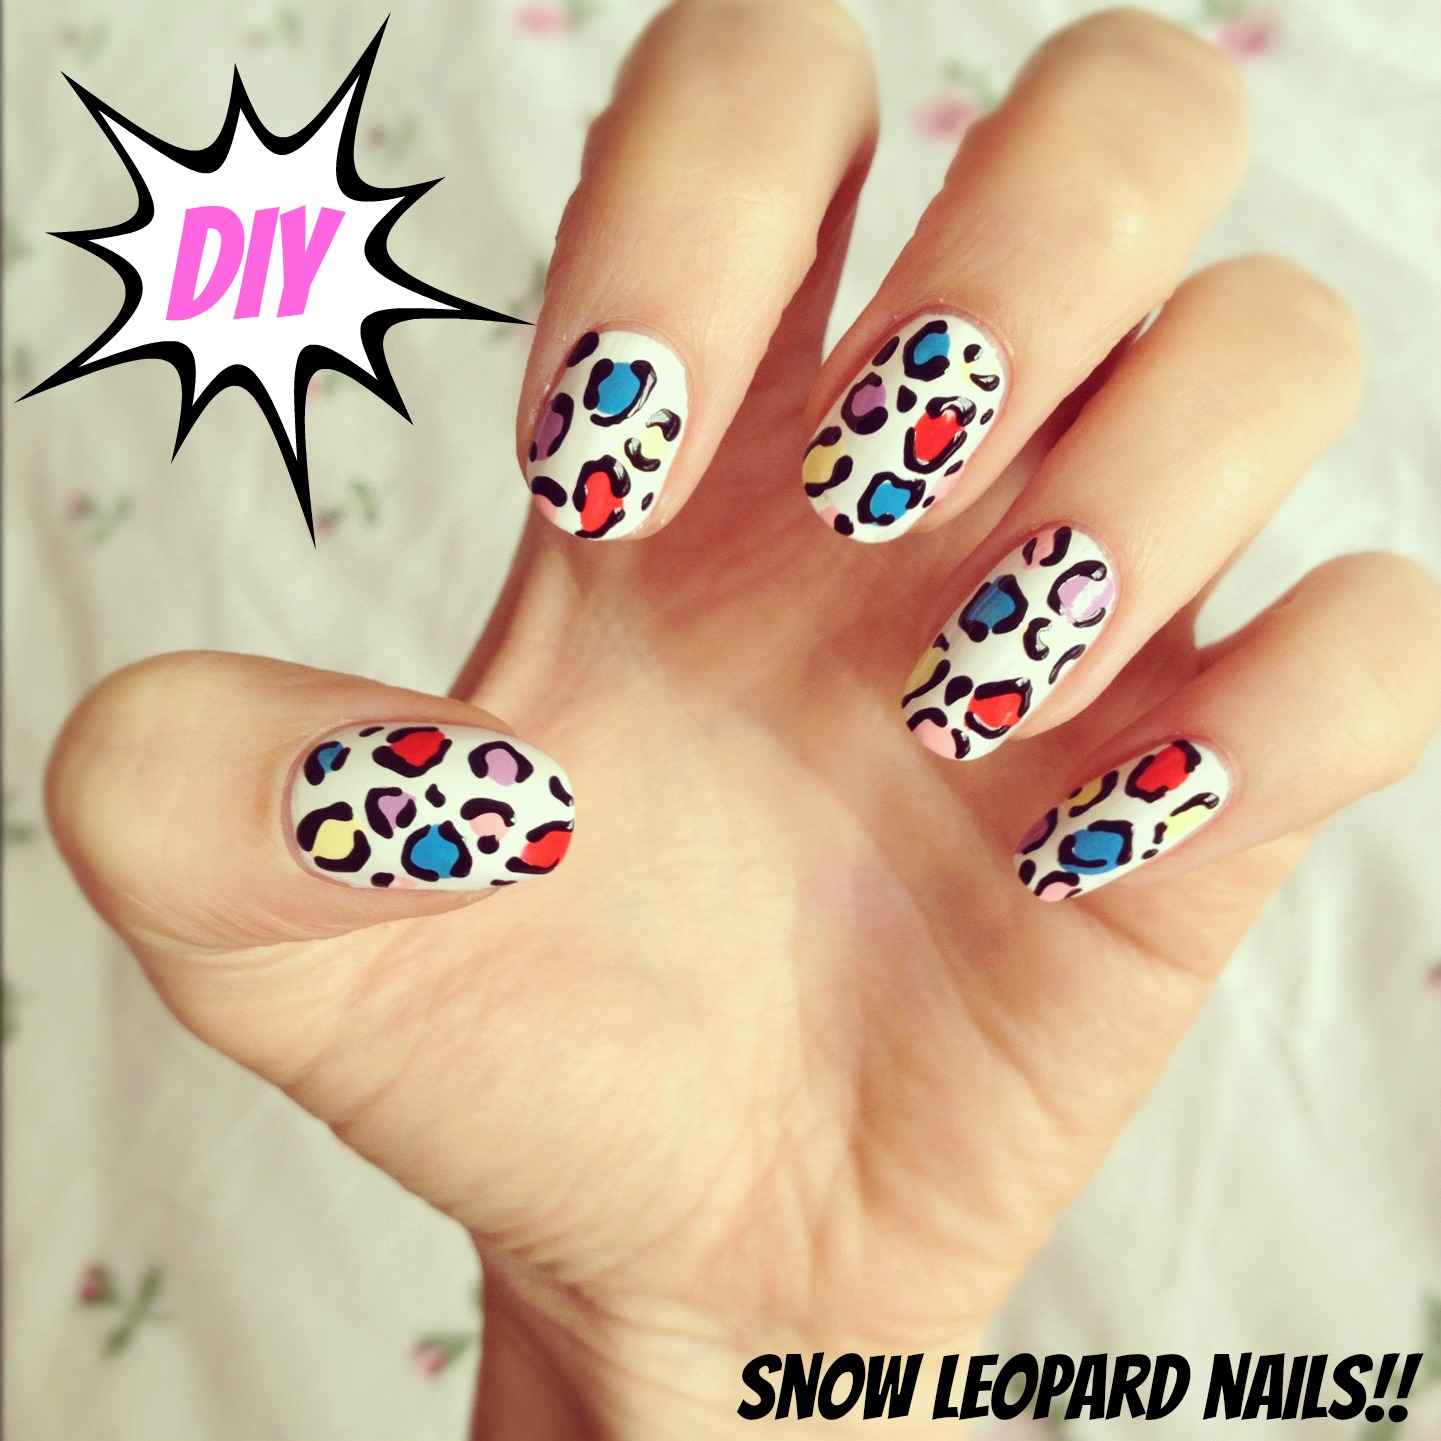 DIY Snow Leopard Nail Art!